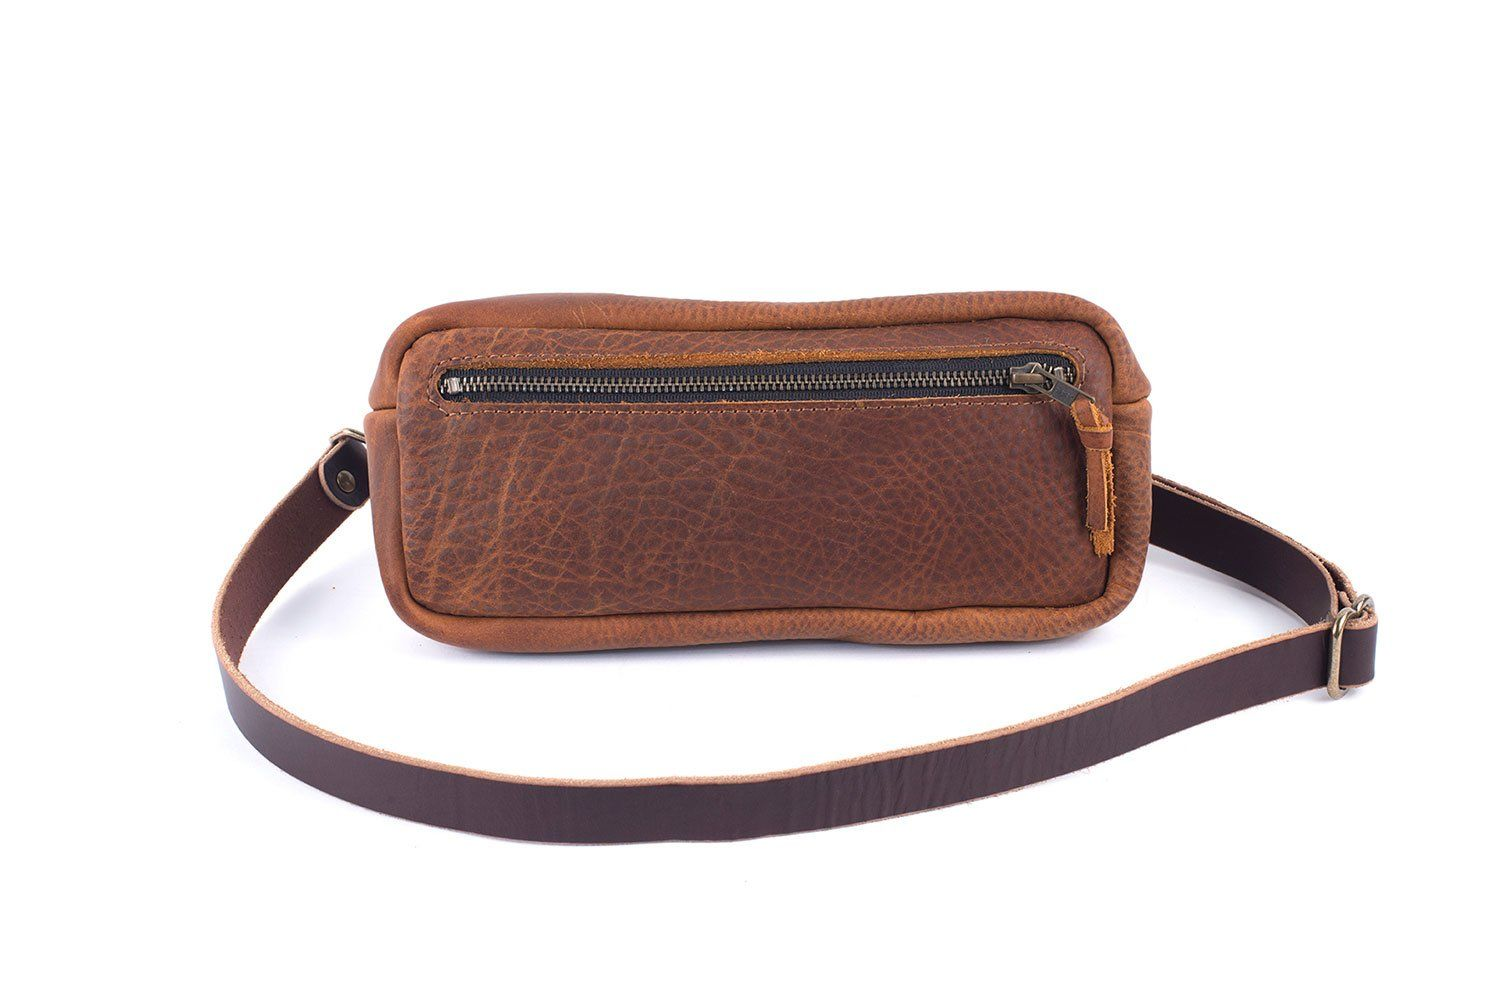 LEATHER FANNY PACK / LEATHER WAIST BAG